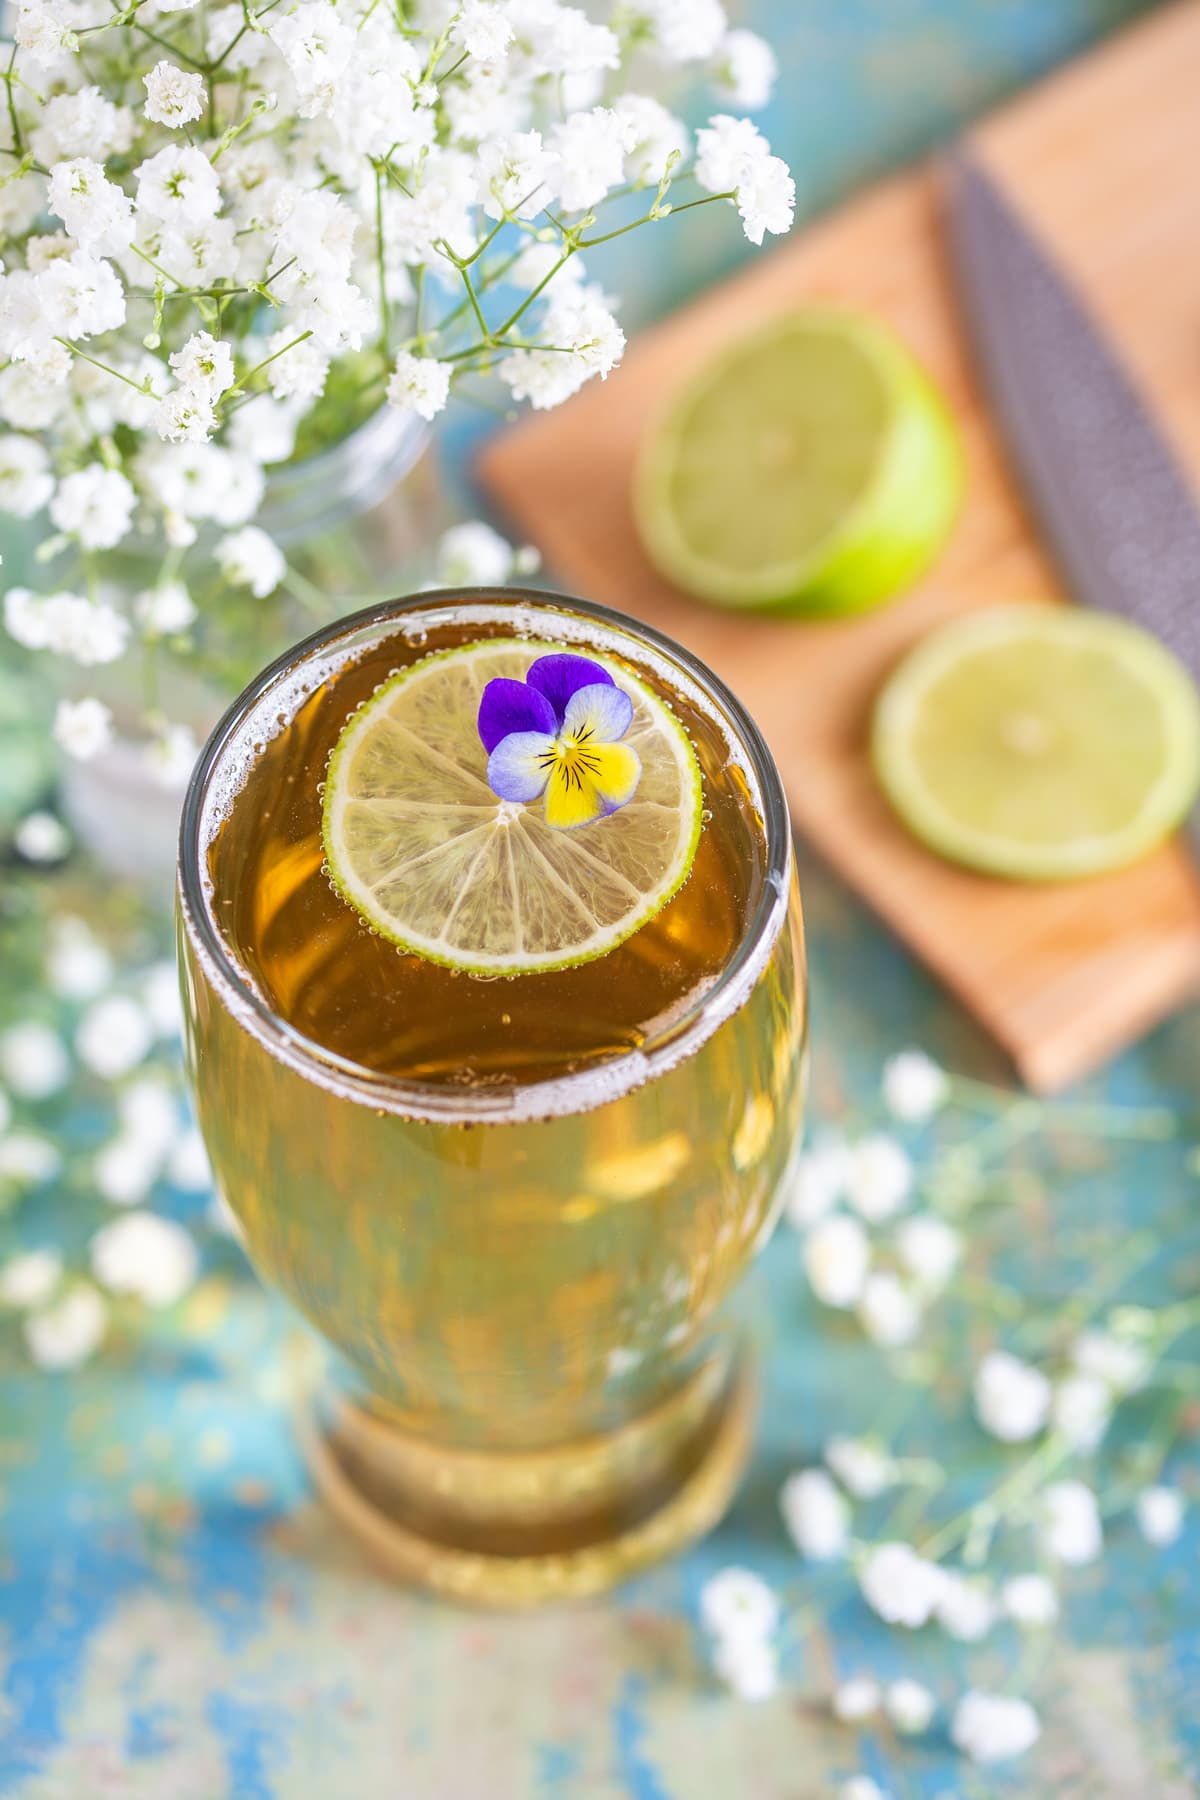 A little edible flower and lime slice decorating the top of the drink.